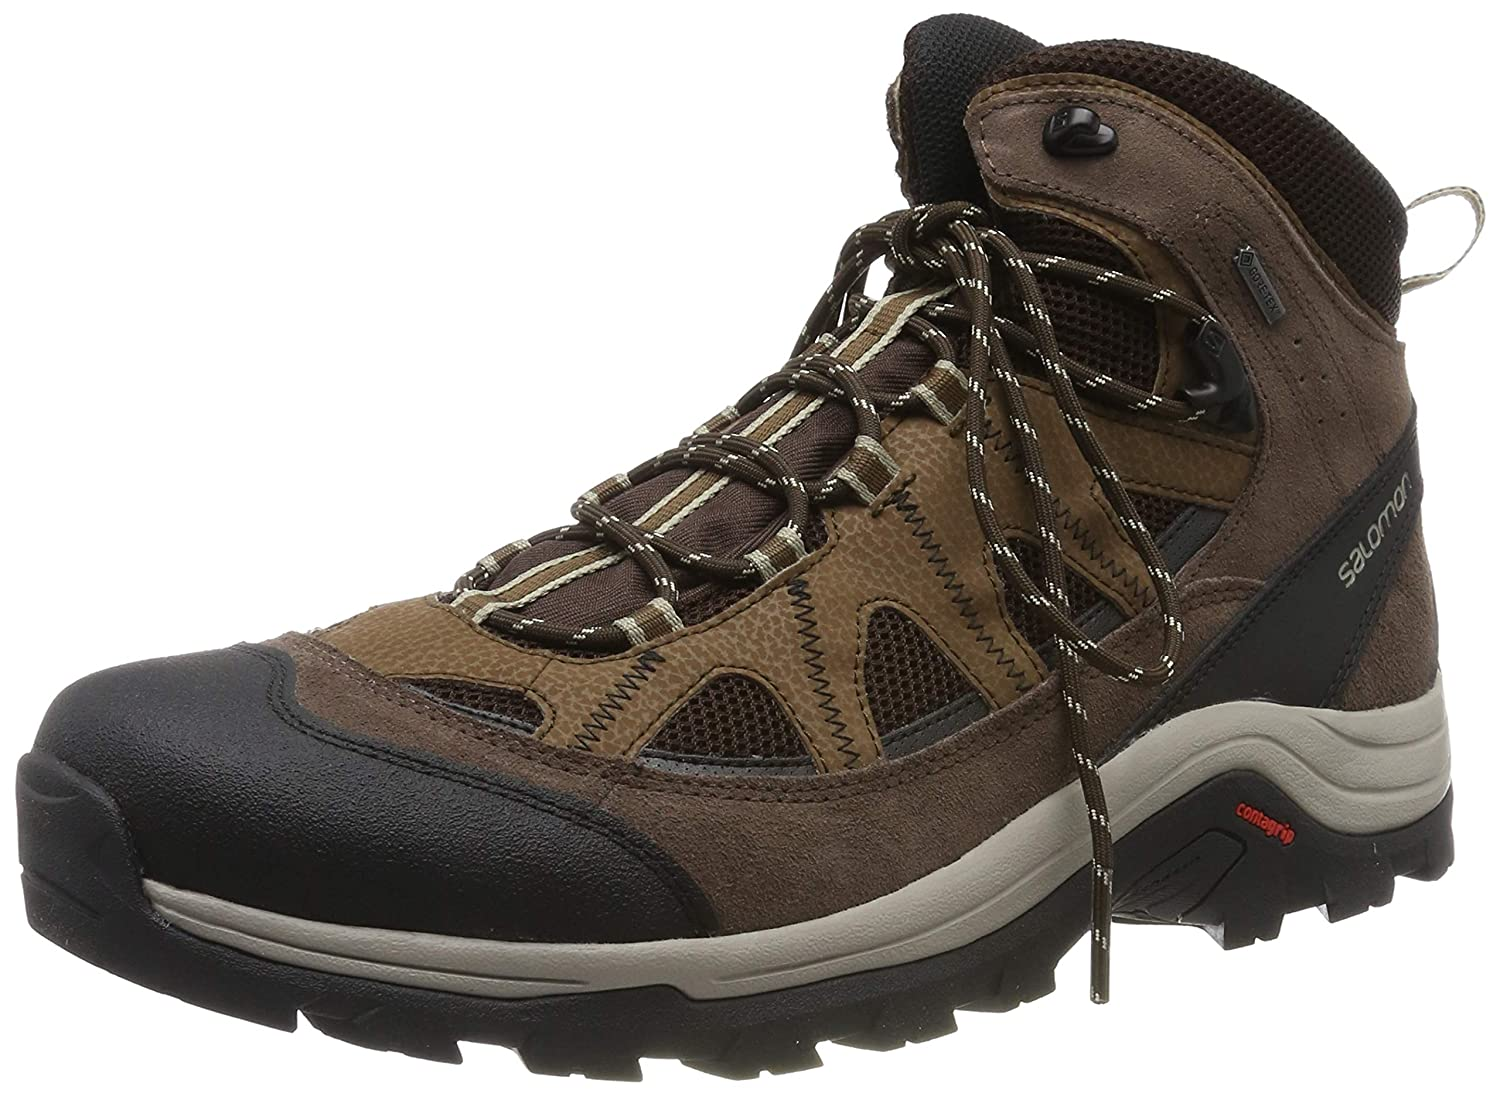 TALLA 42 EU. Salomon Authentic LTR GTX, Zapatillas de Trail Running para Hombre